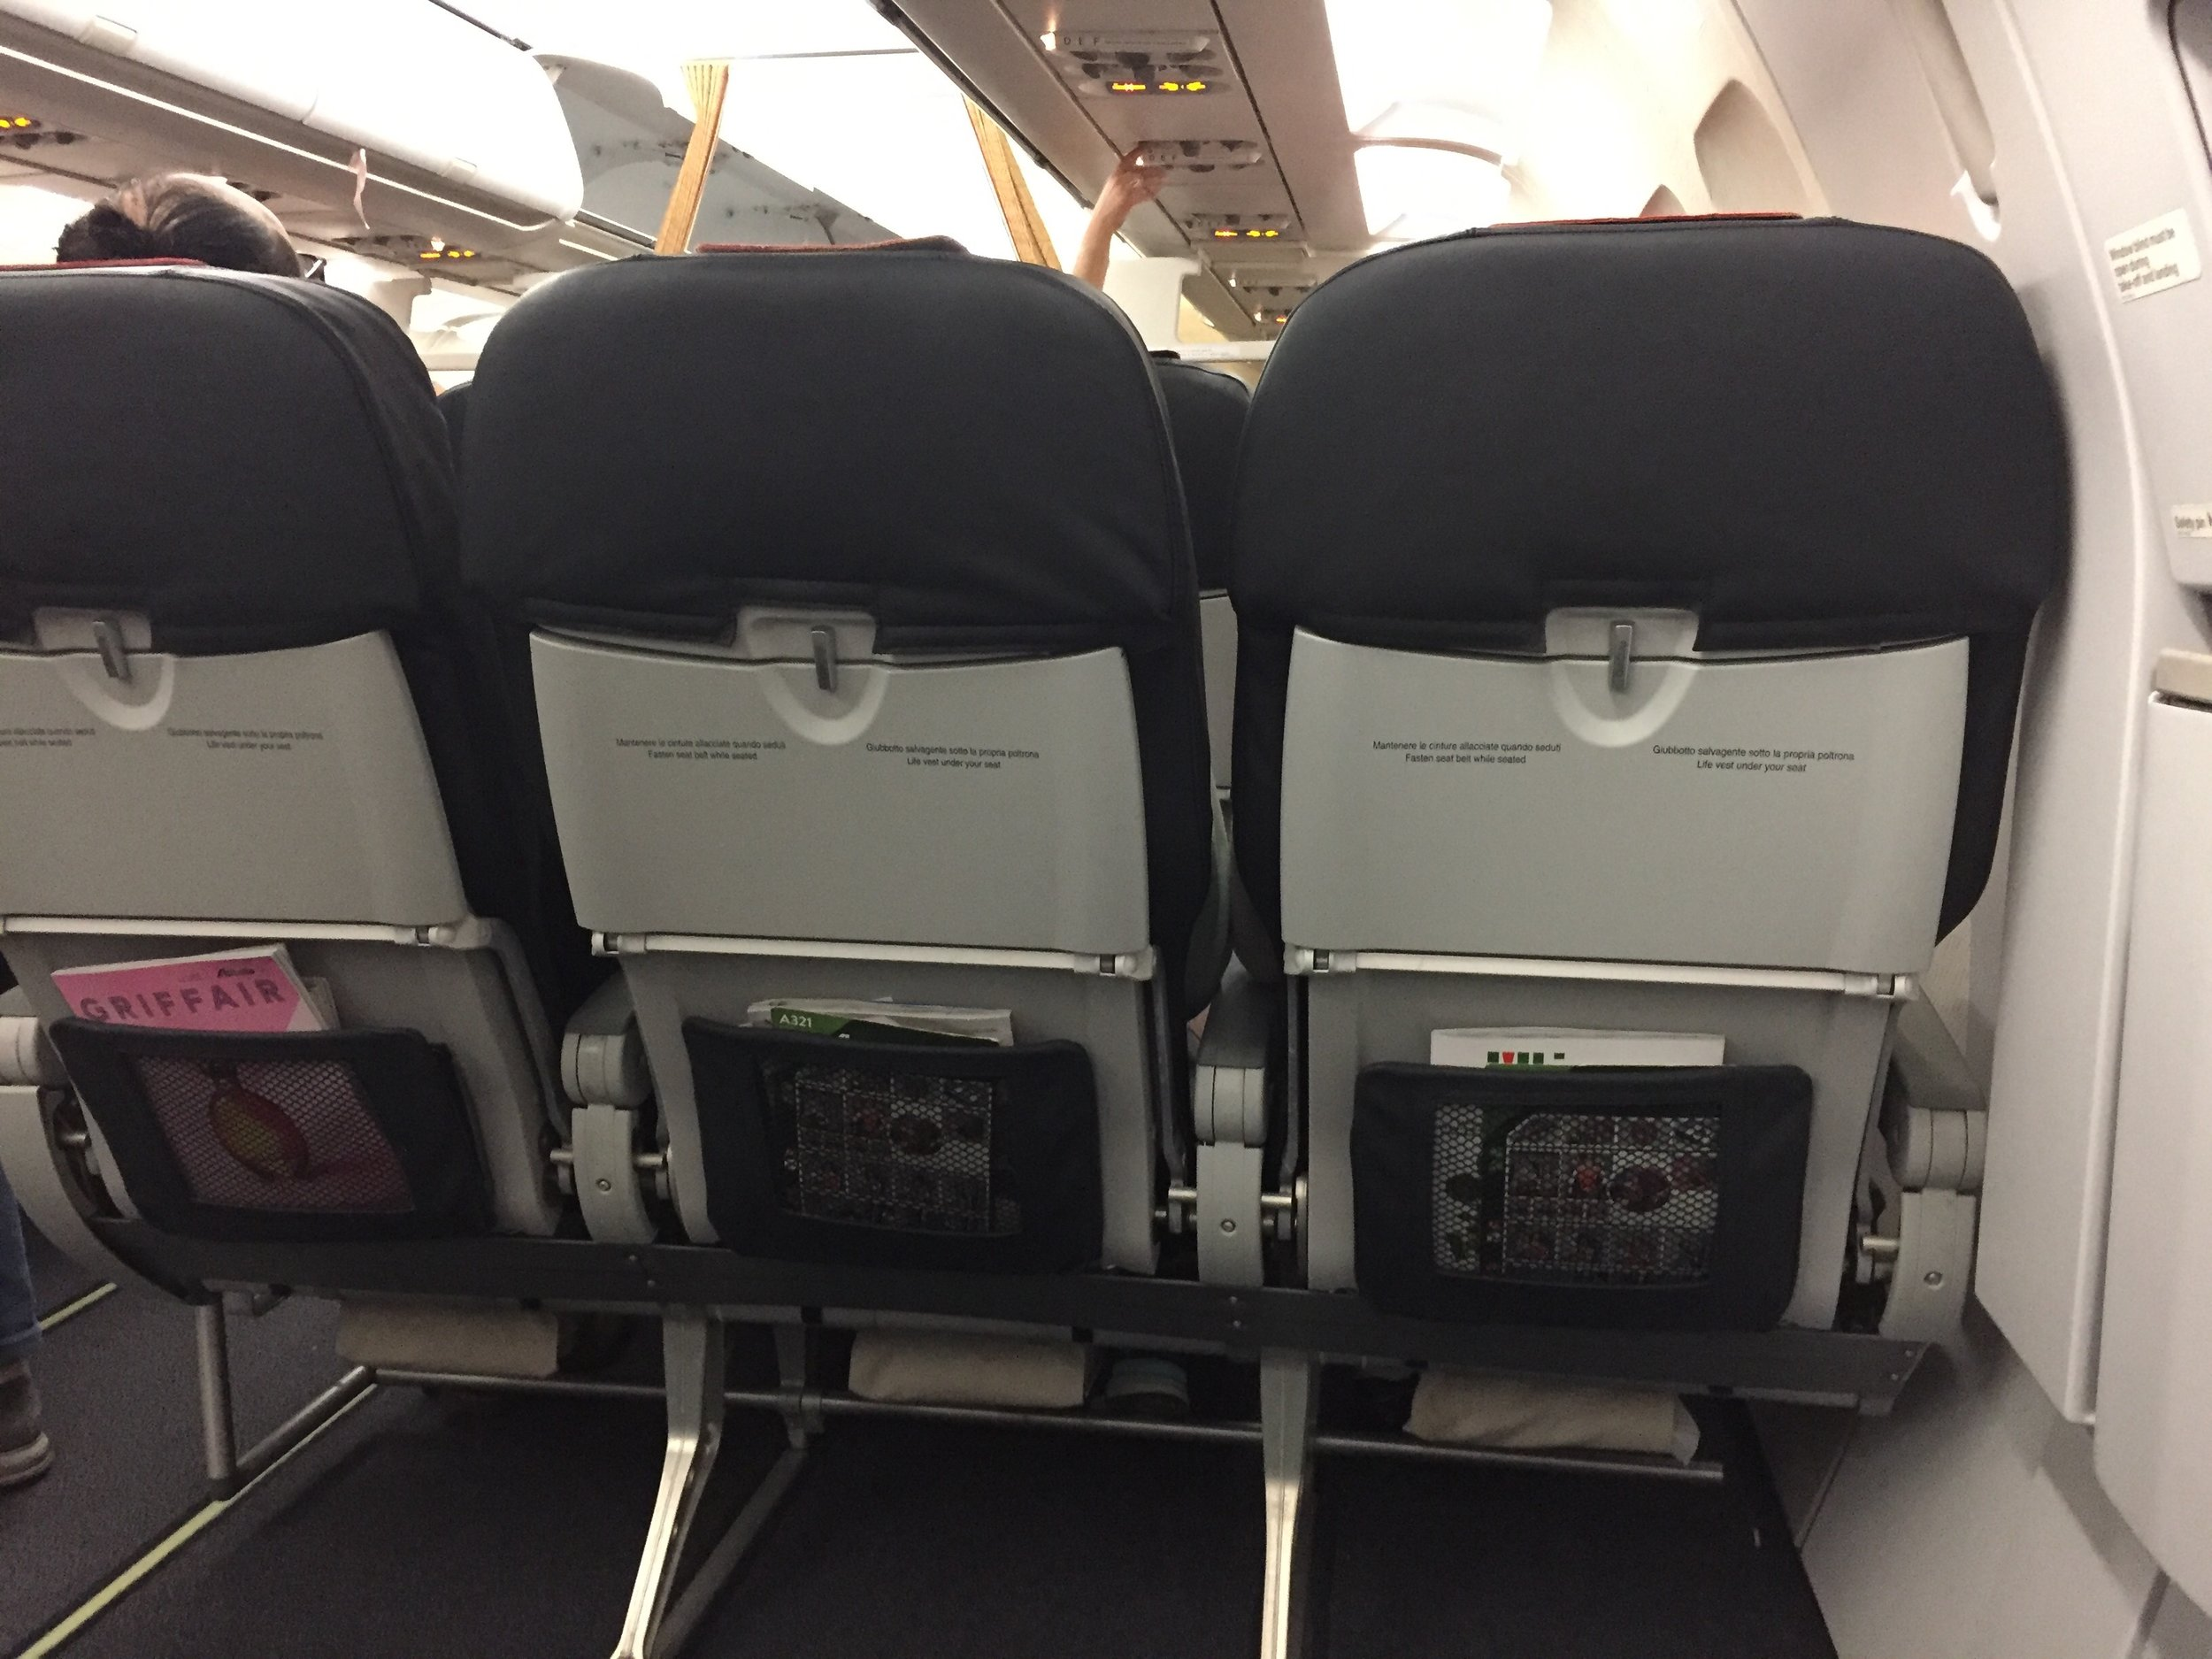 It you ever travel on Alitalia's A321 on economy (and you fulfill the mandatory conditions, of course) , keep this in your mind: row 9A has even more legroom than business class!